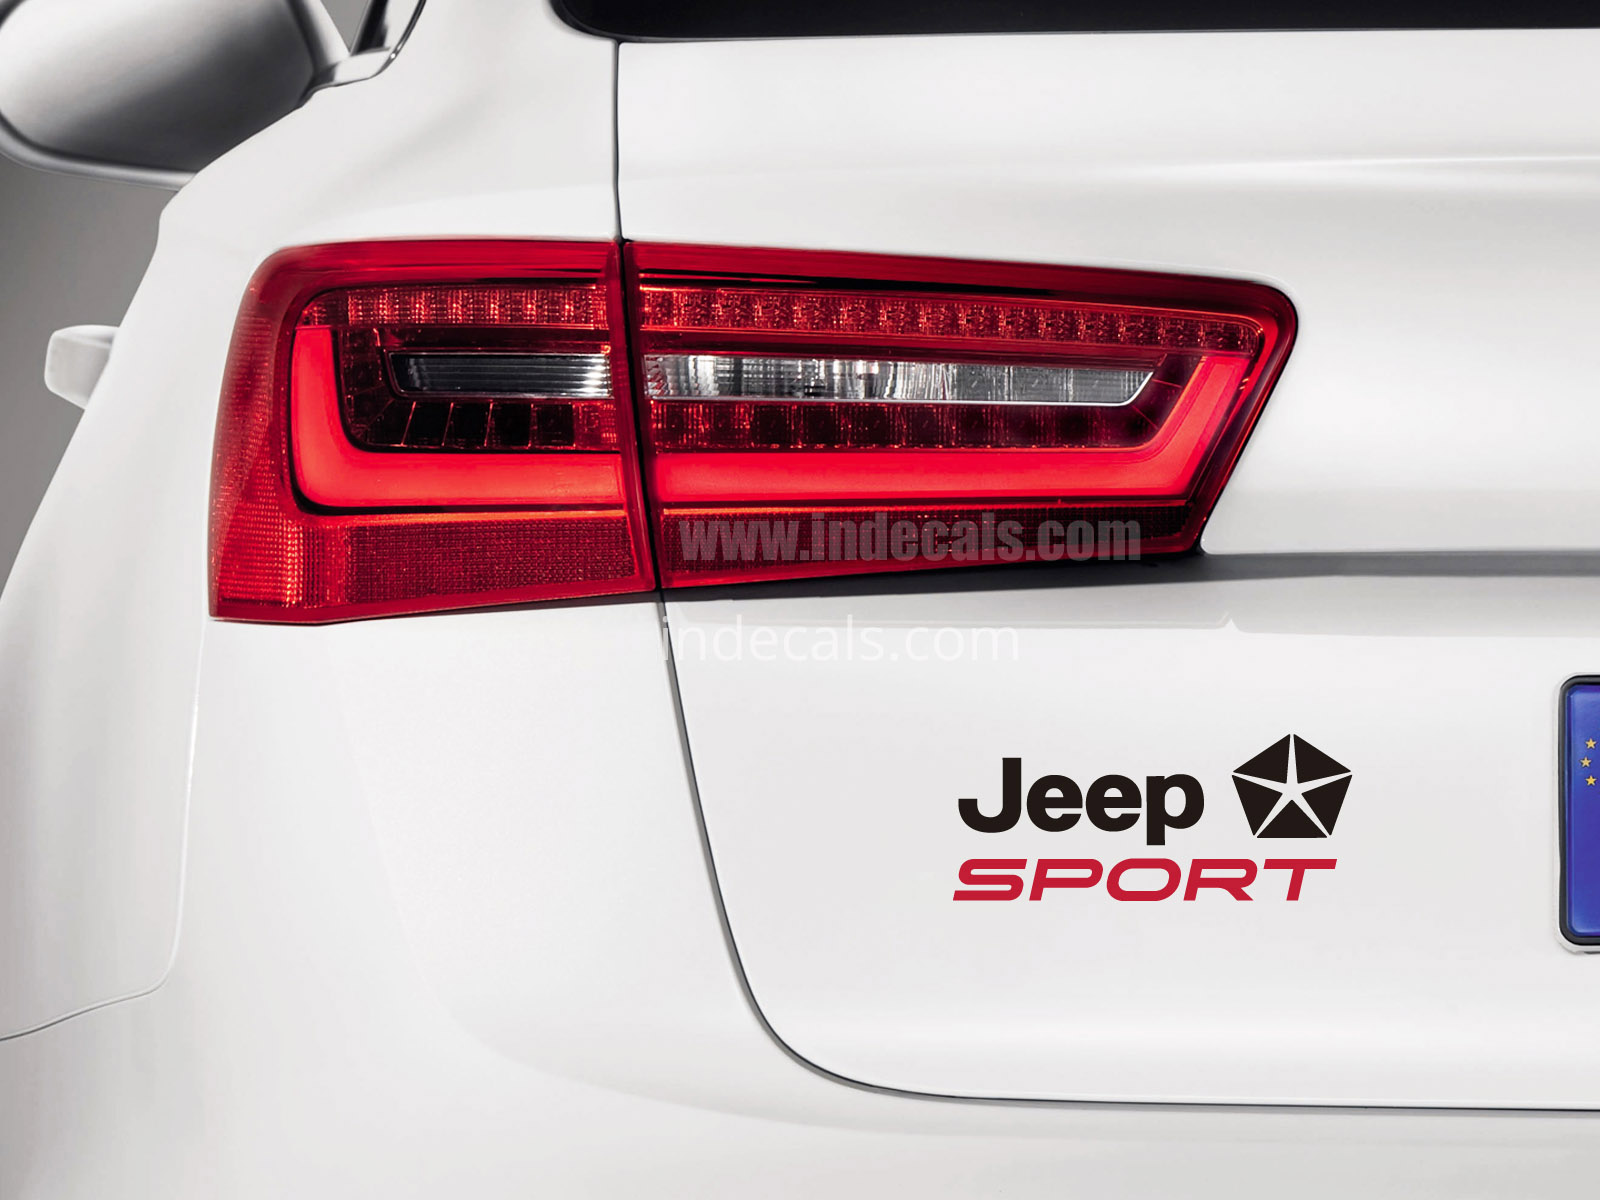 1 x Jeep Sports Sticker for Trunk - Black & Red